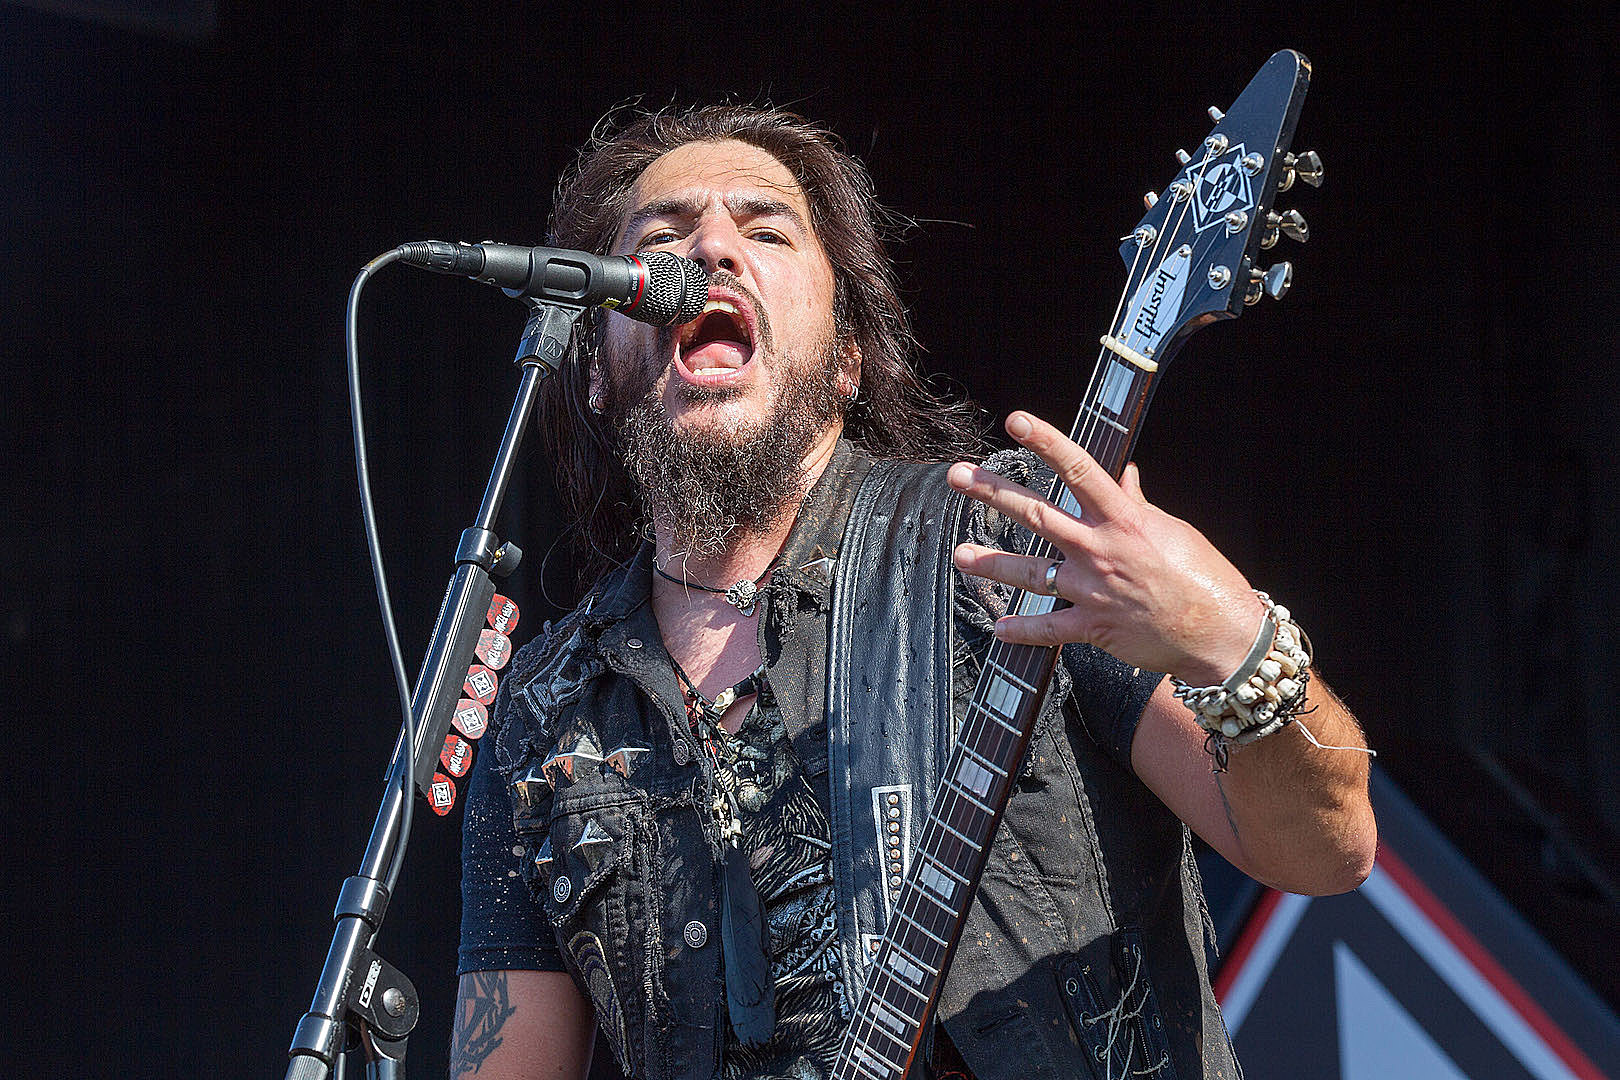 Machine Head's Robb Flynn: Streaming 'Has to be Part of the Equation' for Metal to Survive